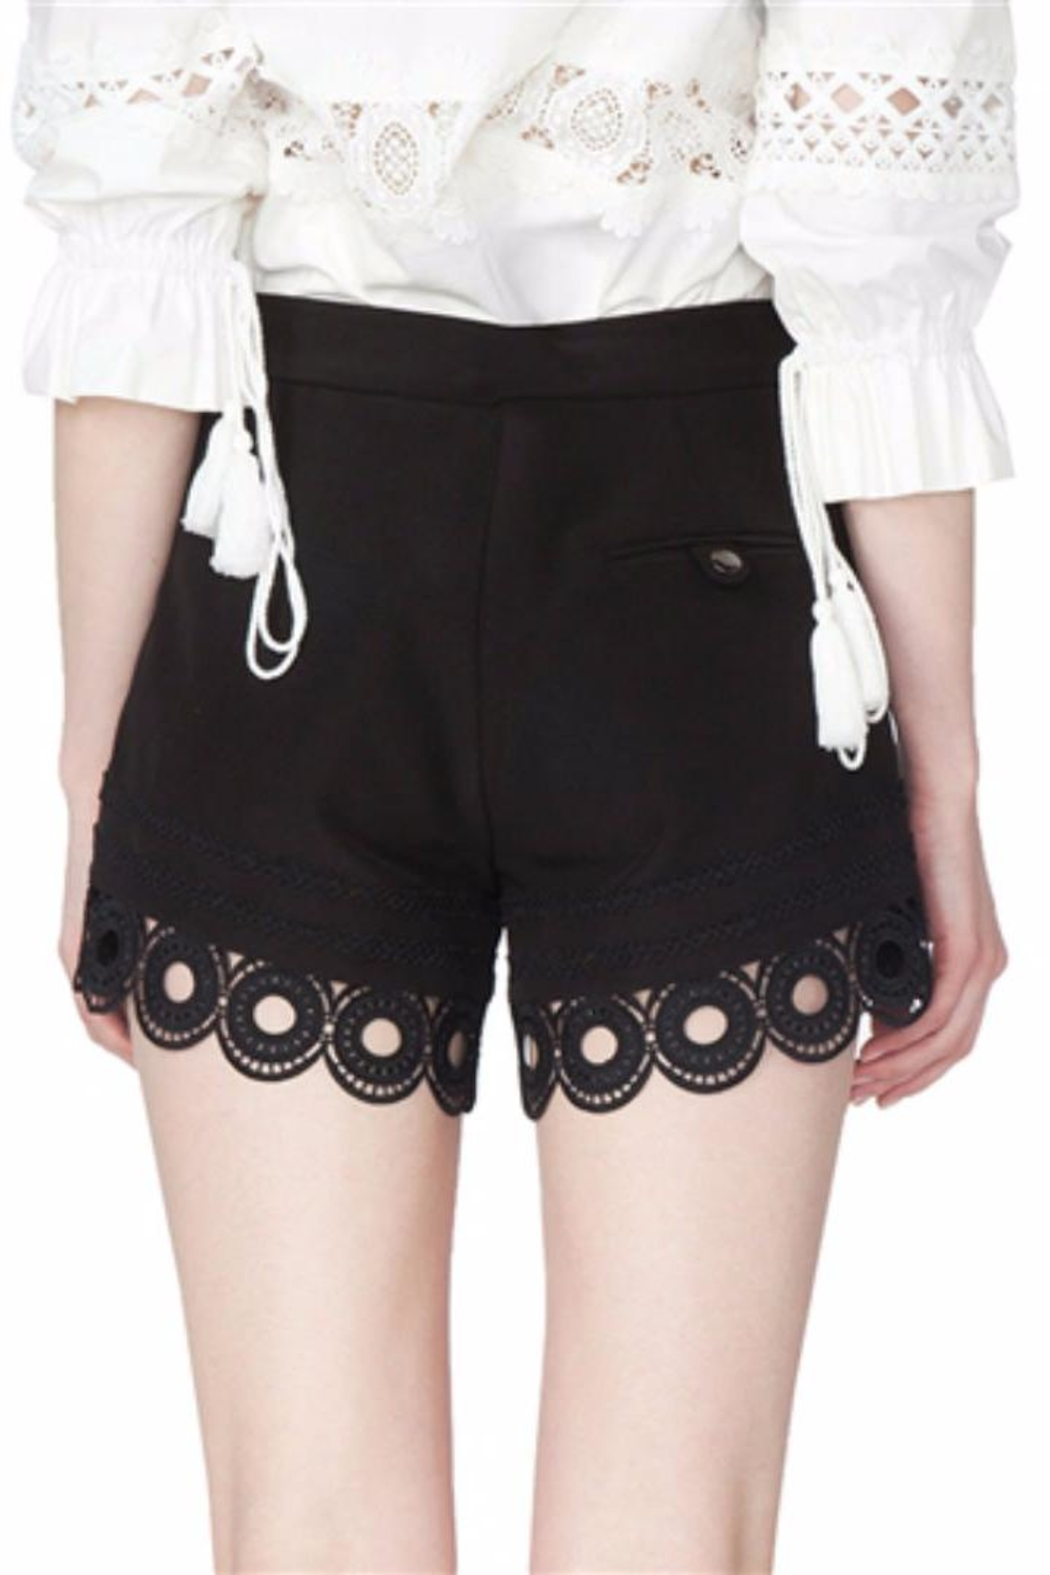 Gracia Black Eyelet Shorts - Side Cropped Image